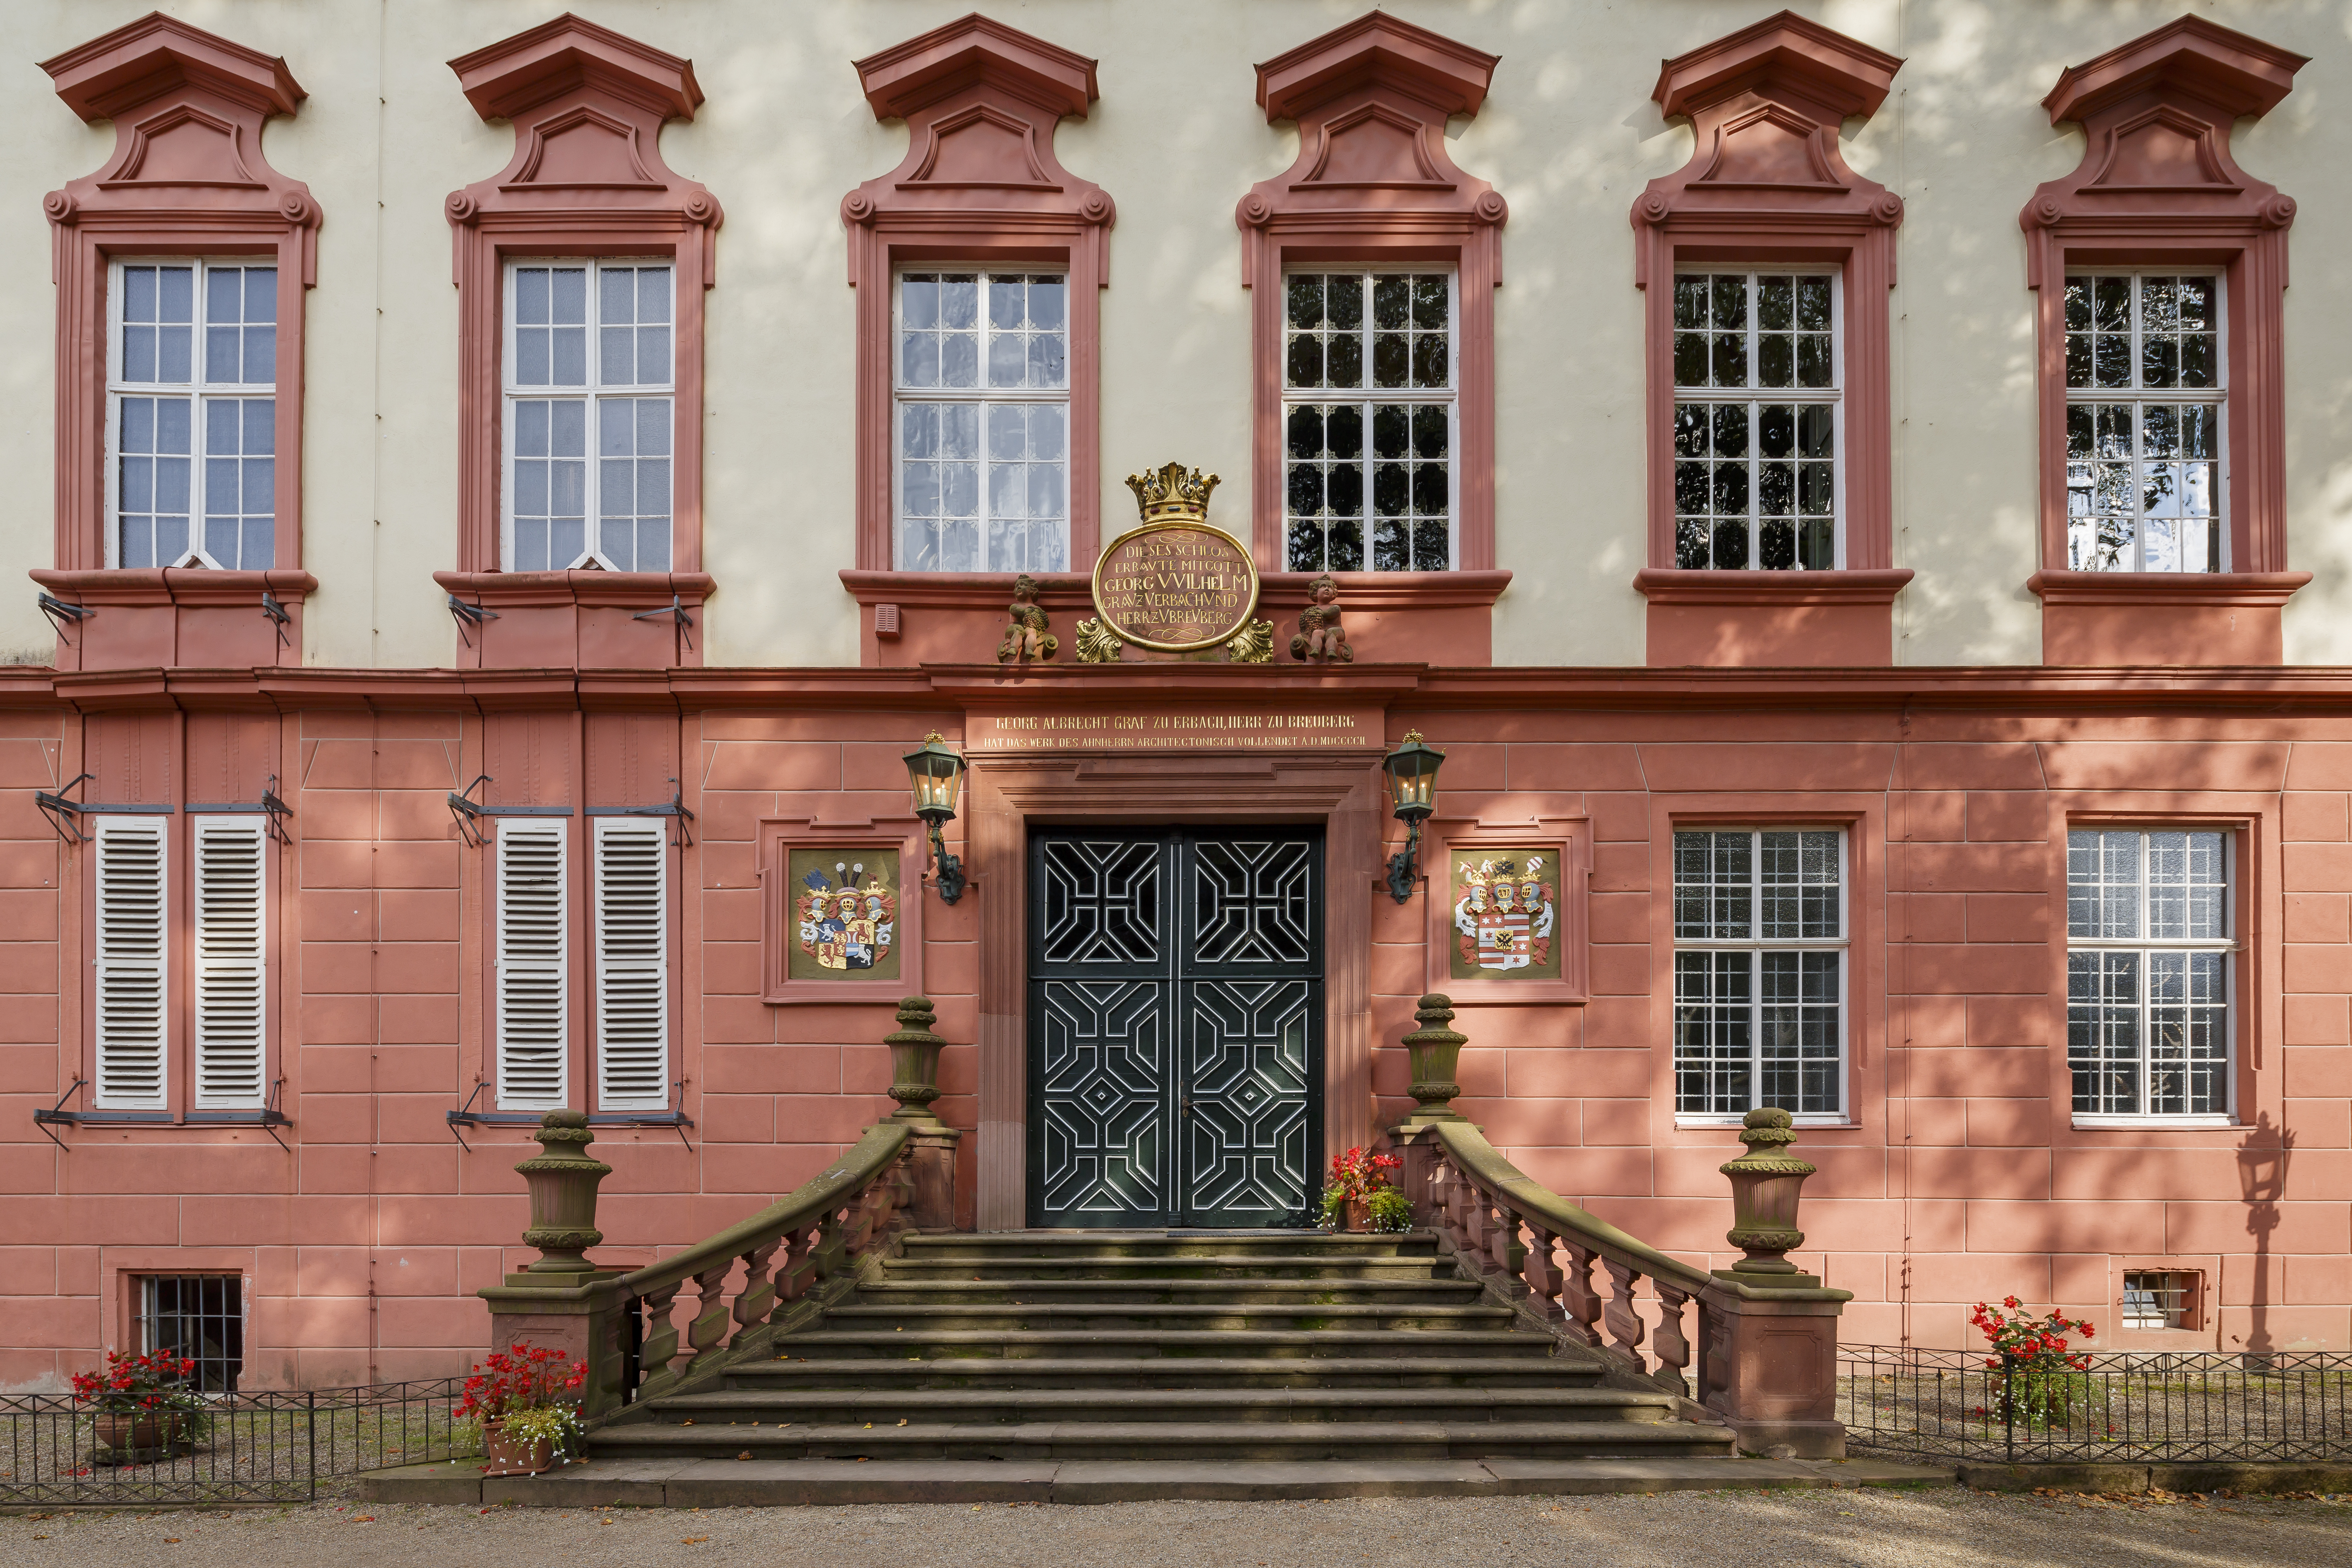 Fileerbach Germany Schloss Erbach 02jpg Wikimedia Commons